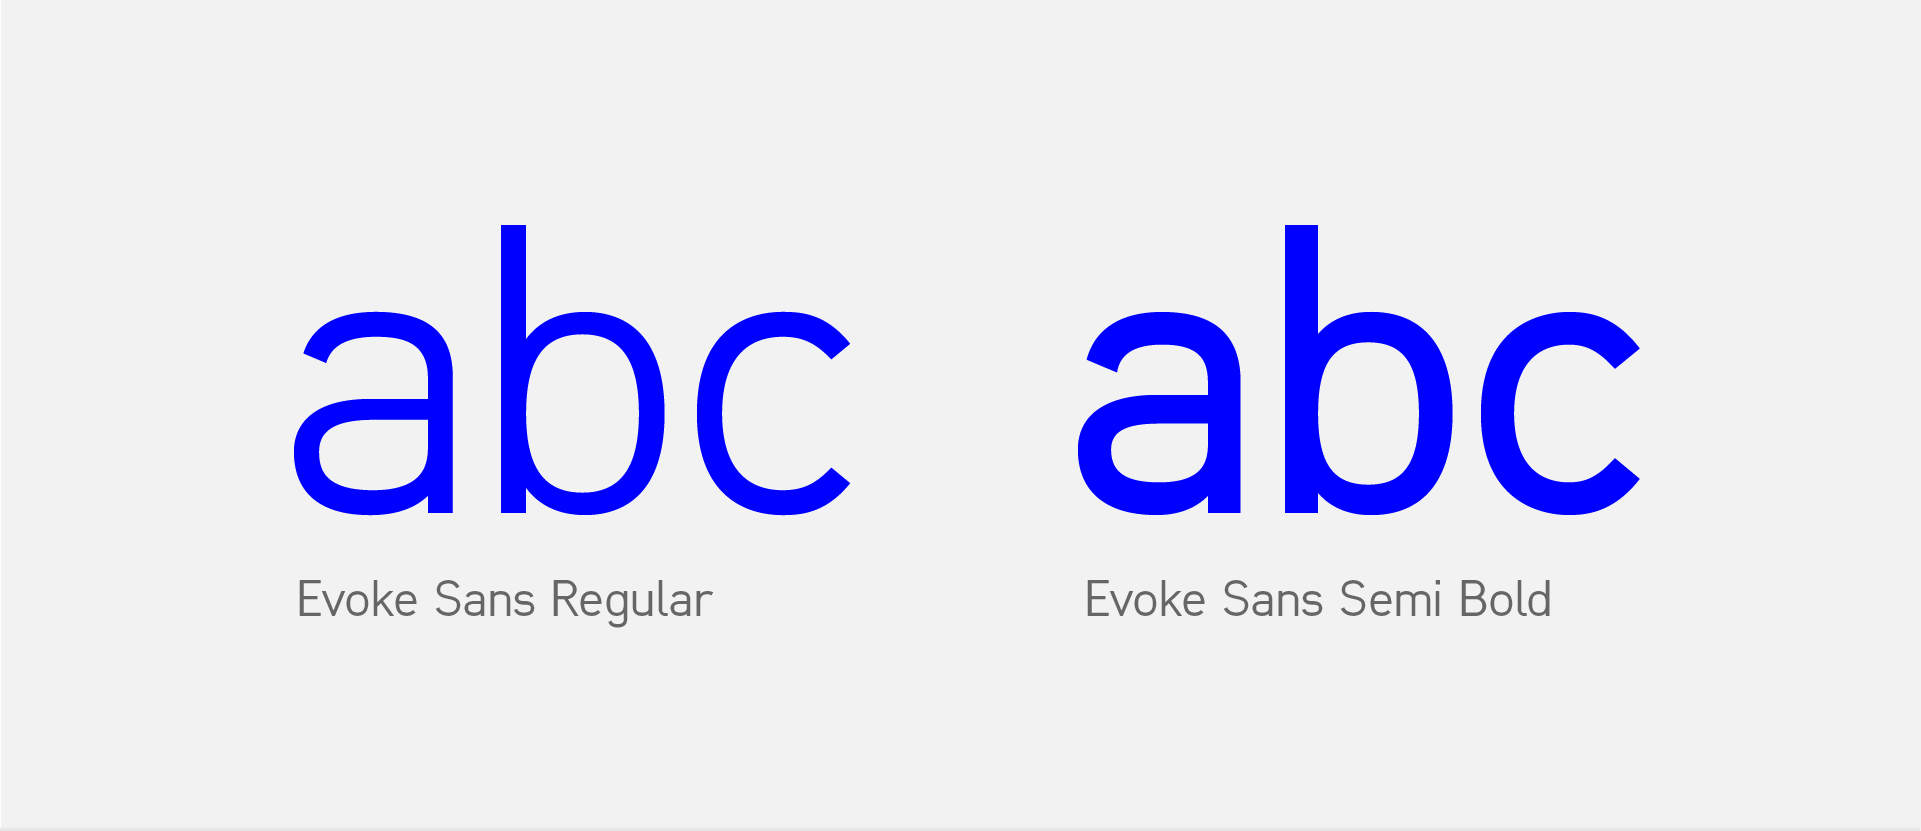 Evoke sans regular and semibold